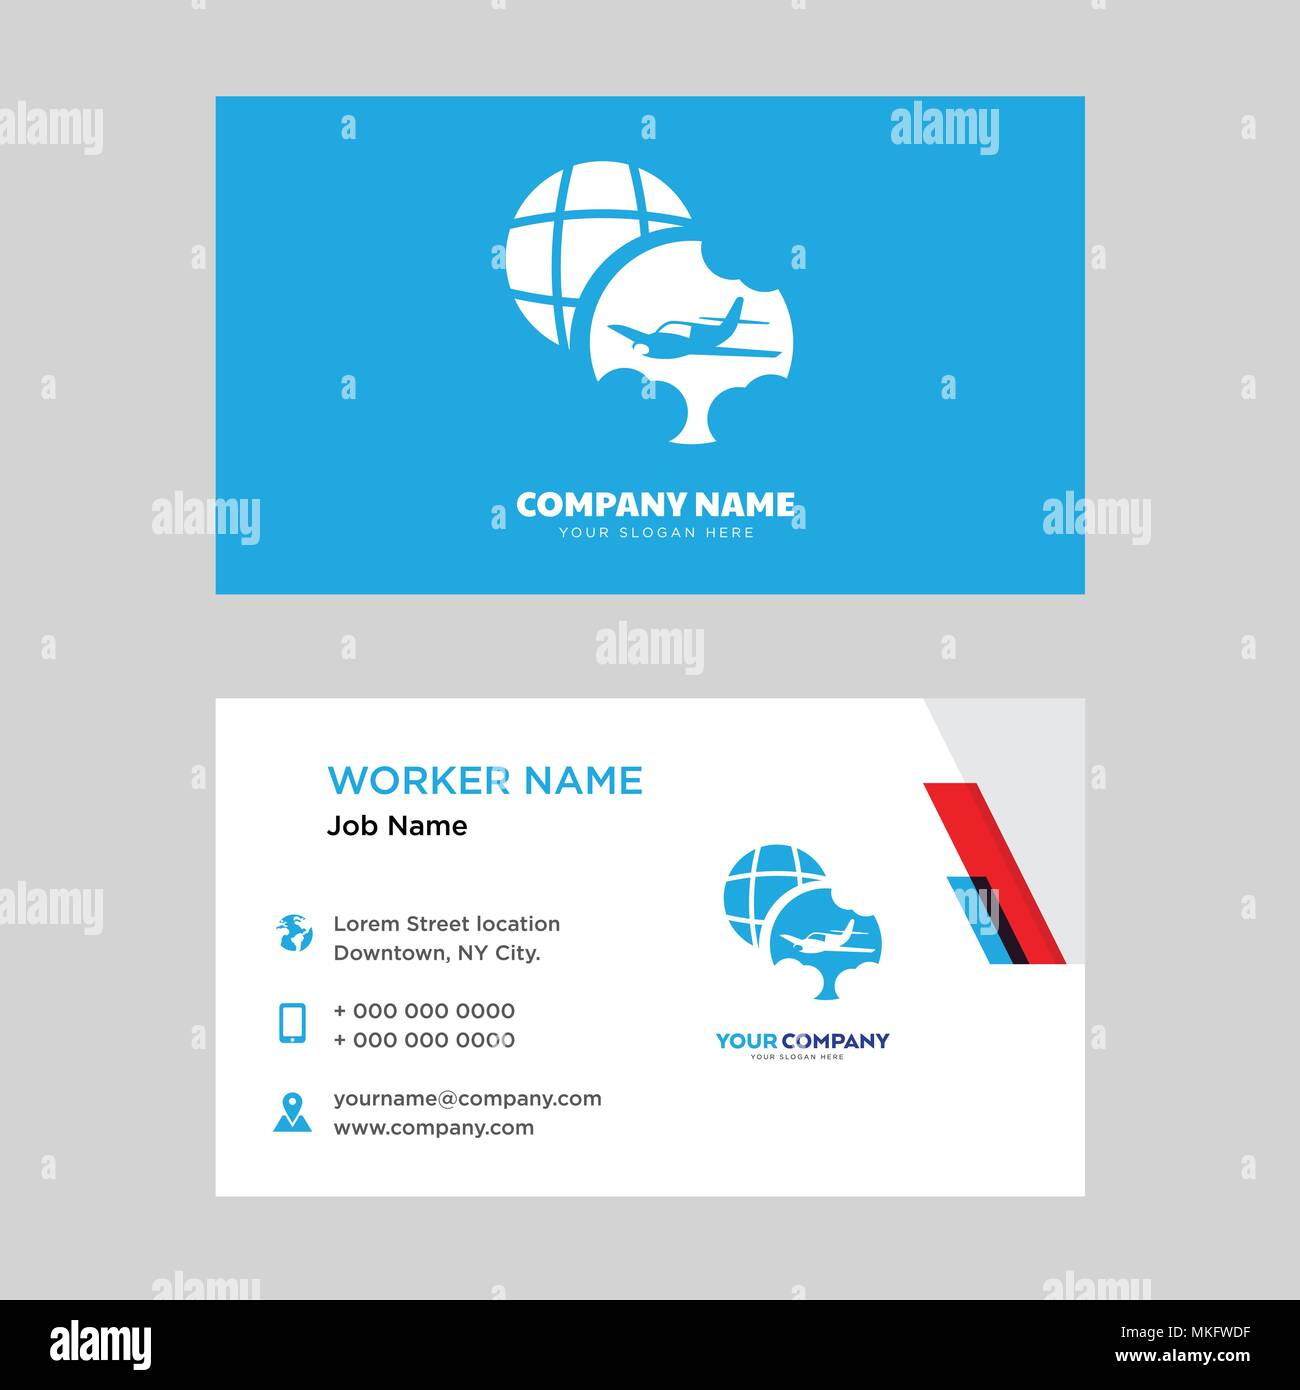 Travel business card design template, Visiting for your company ...